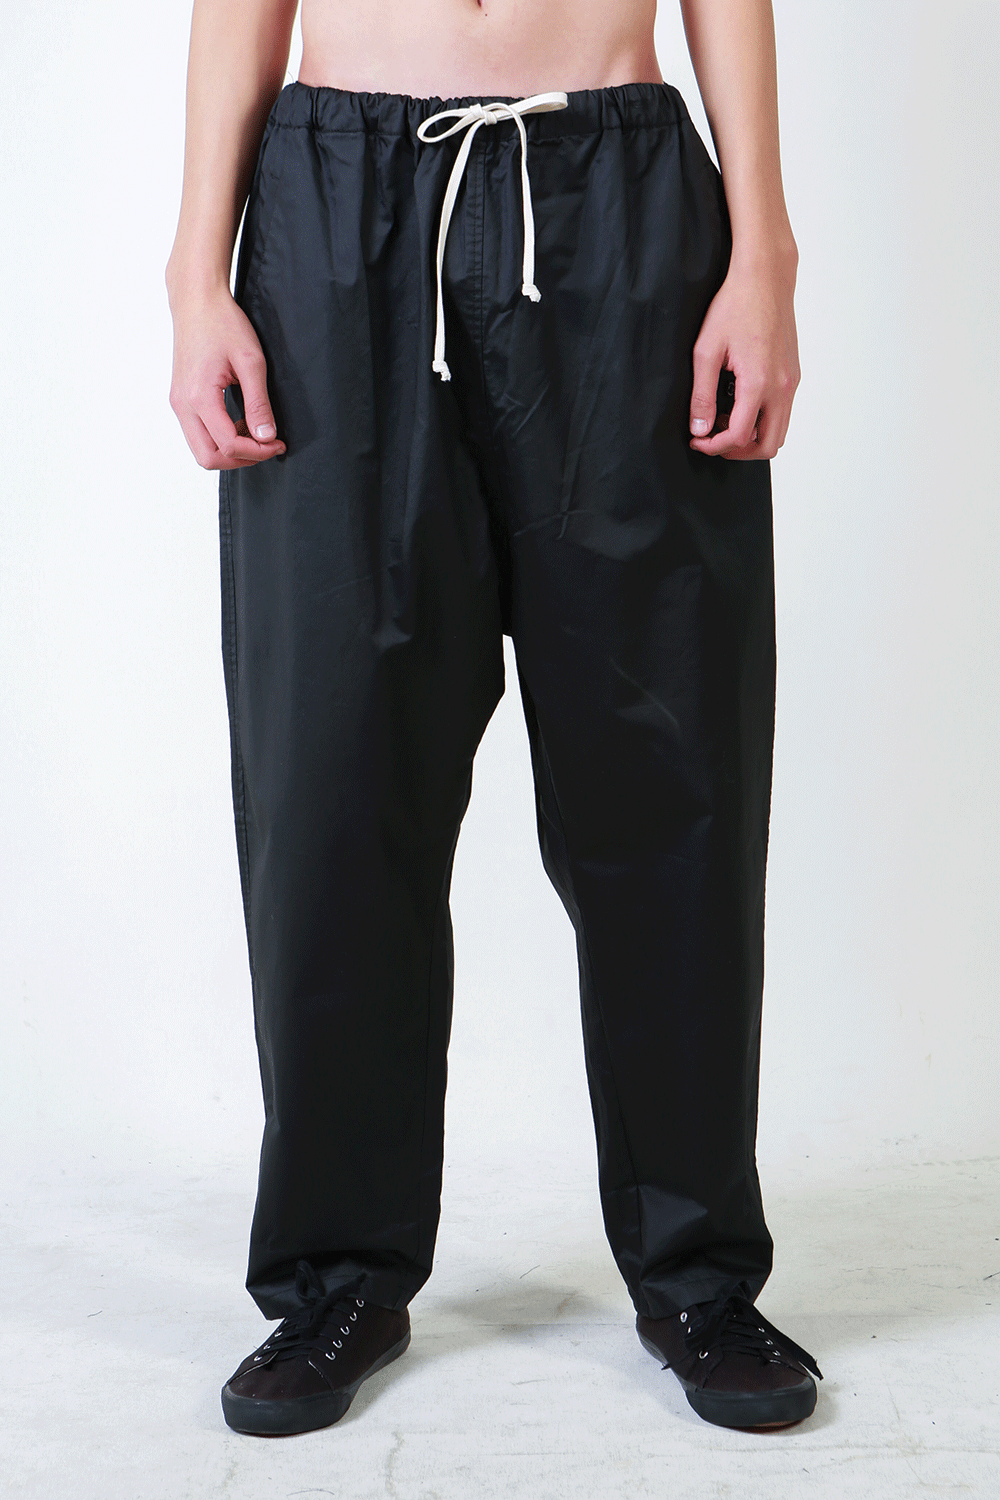 S/S18 NEO LONG PANTS